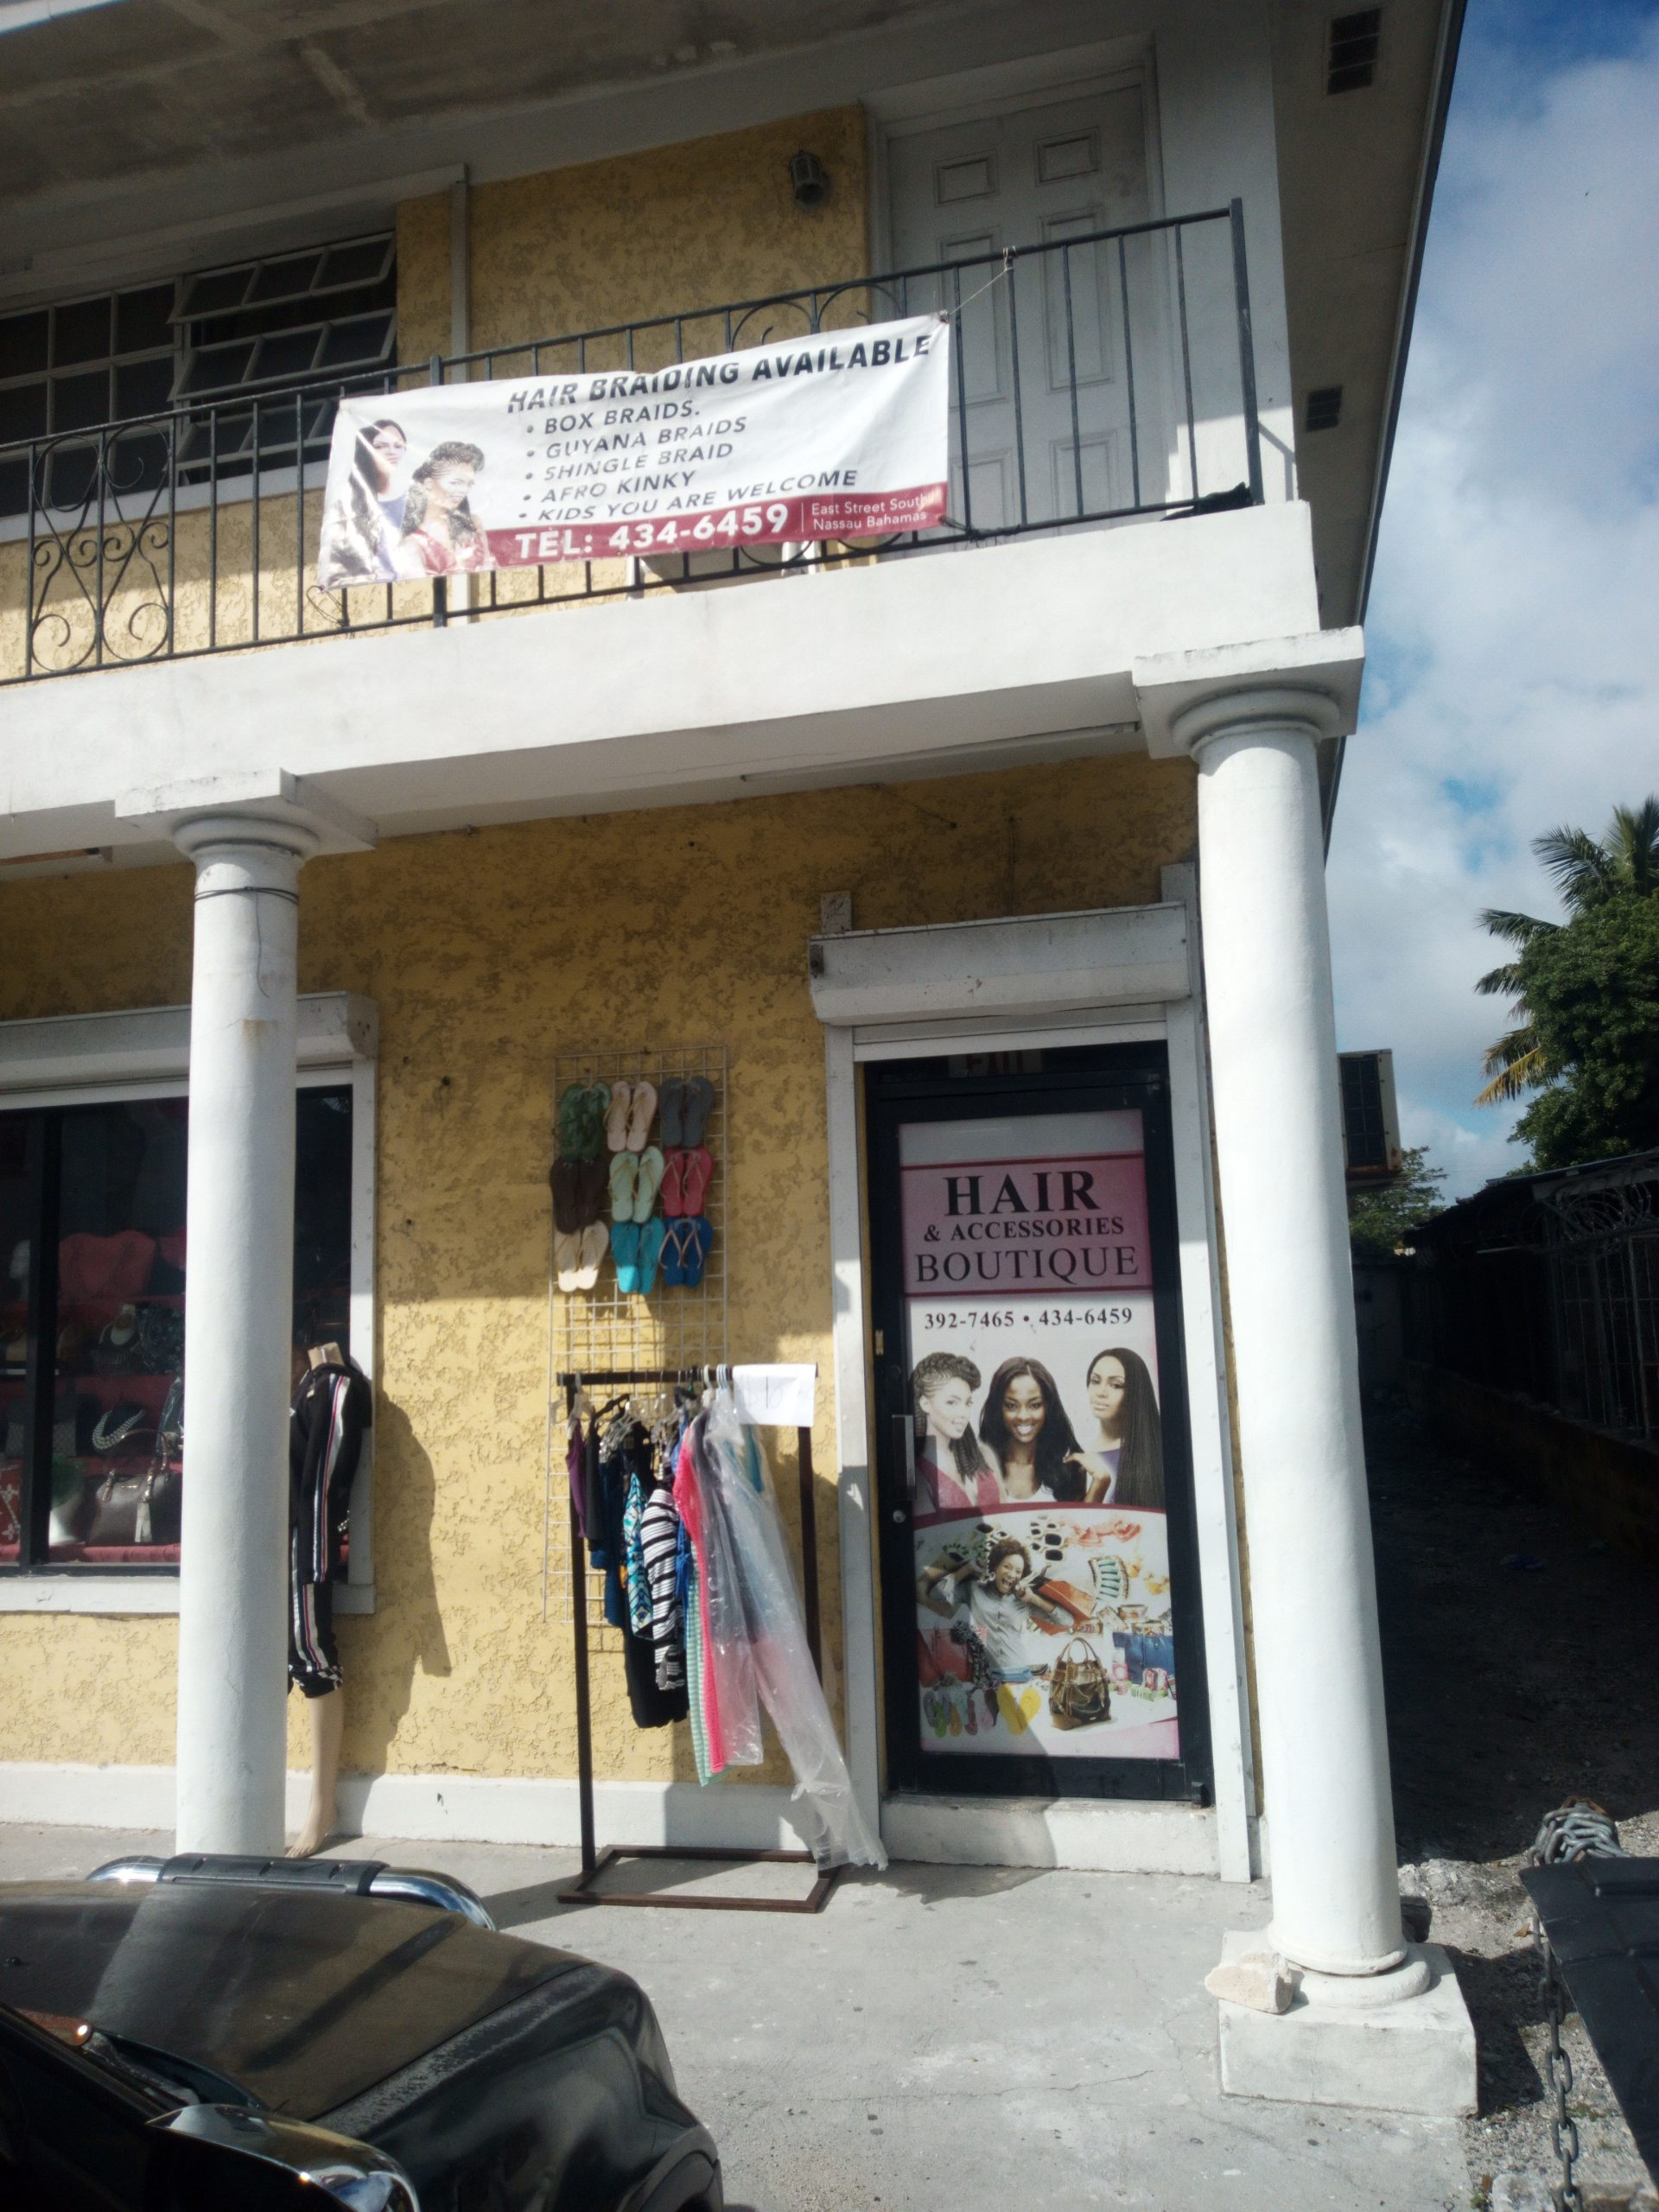 Hair and accessories boutique